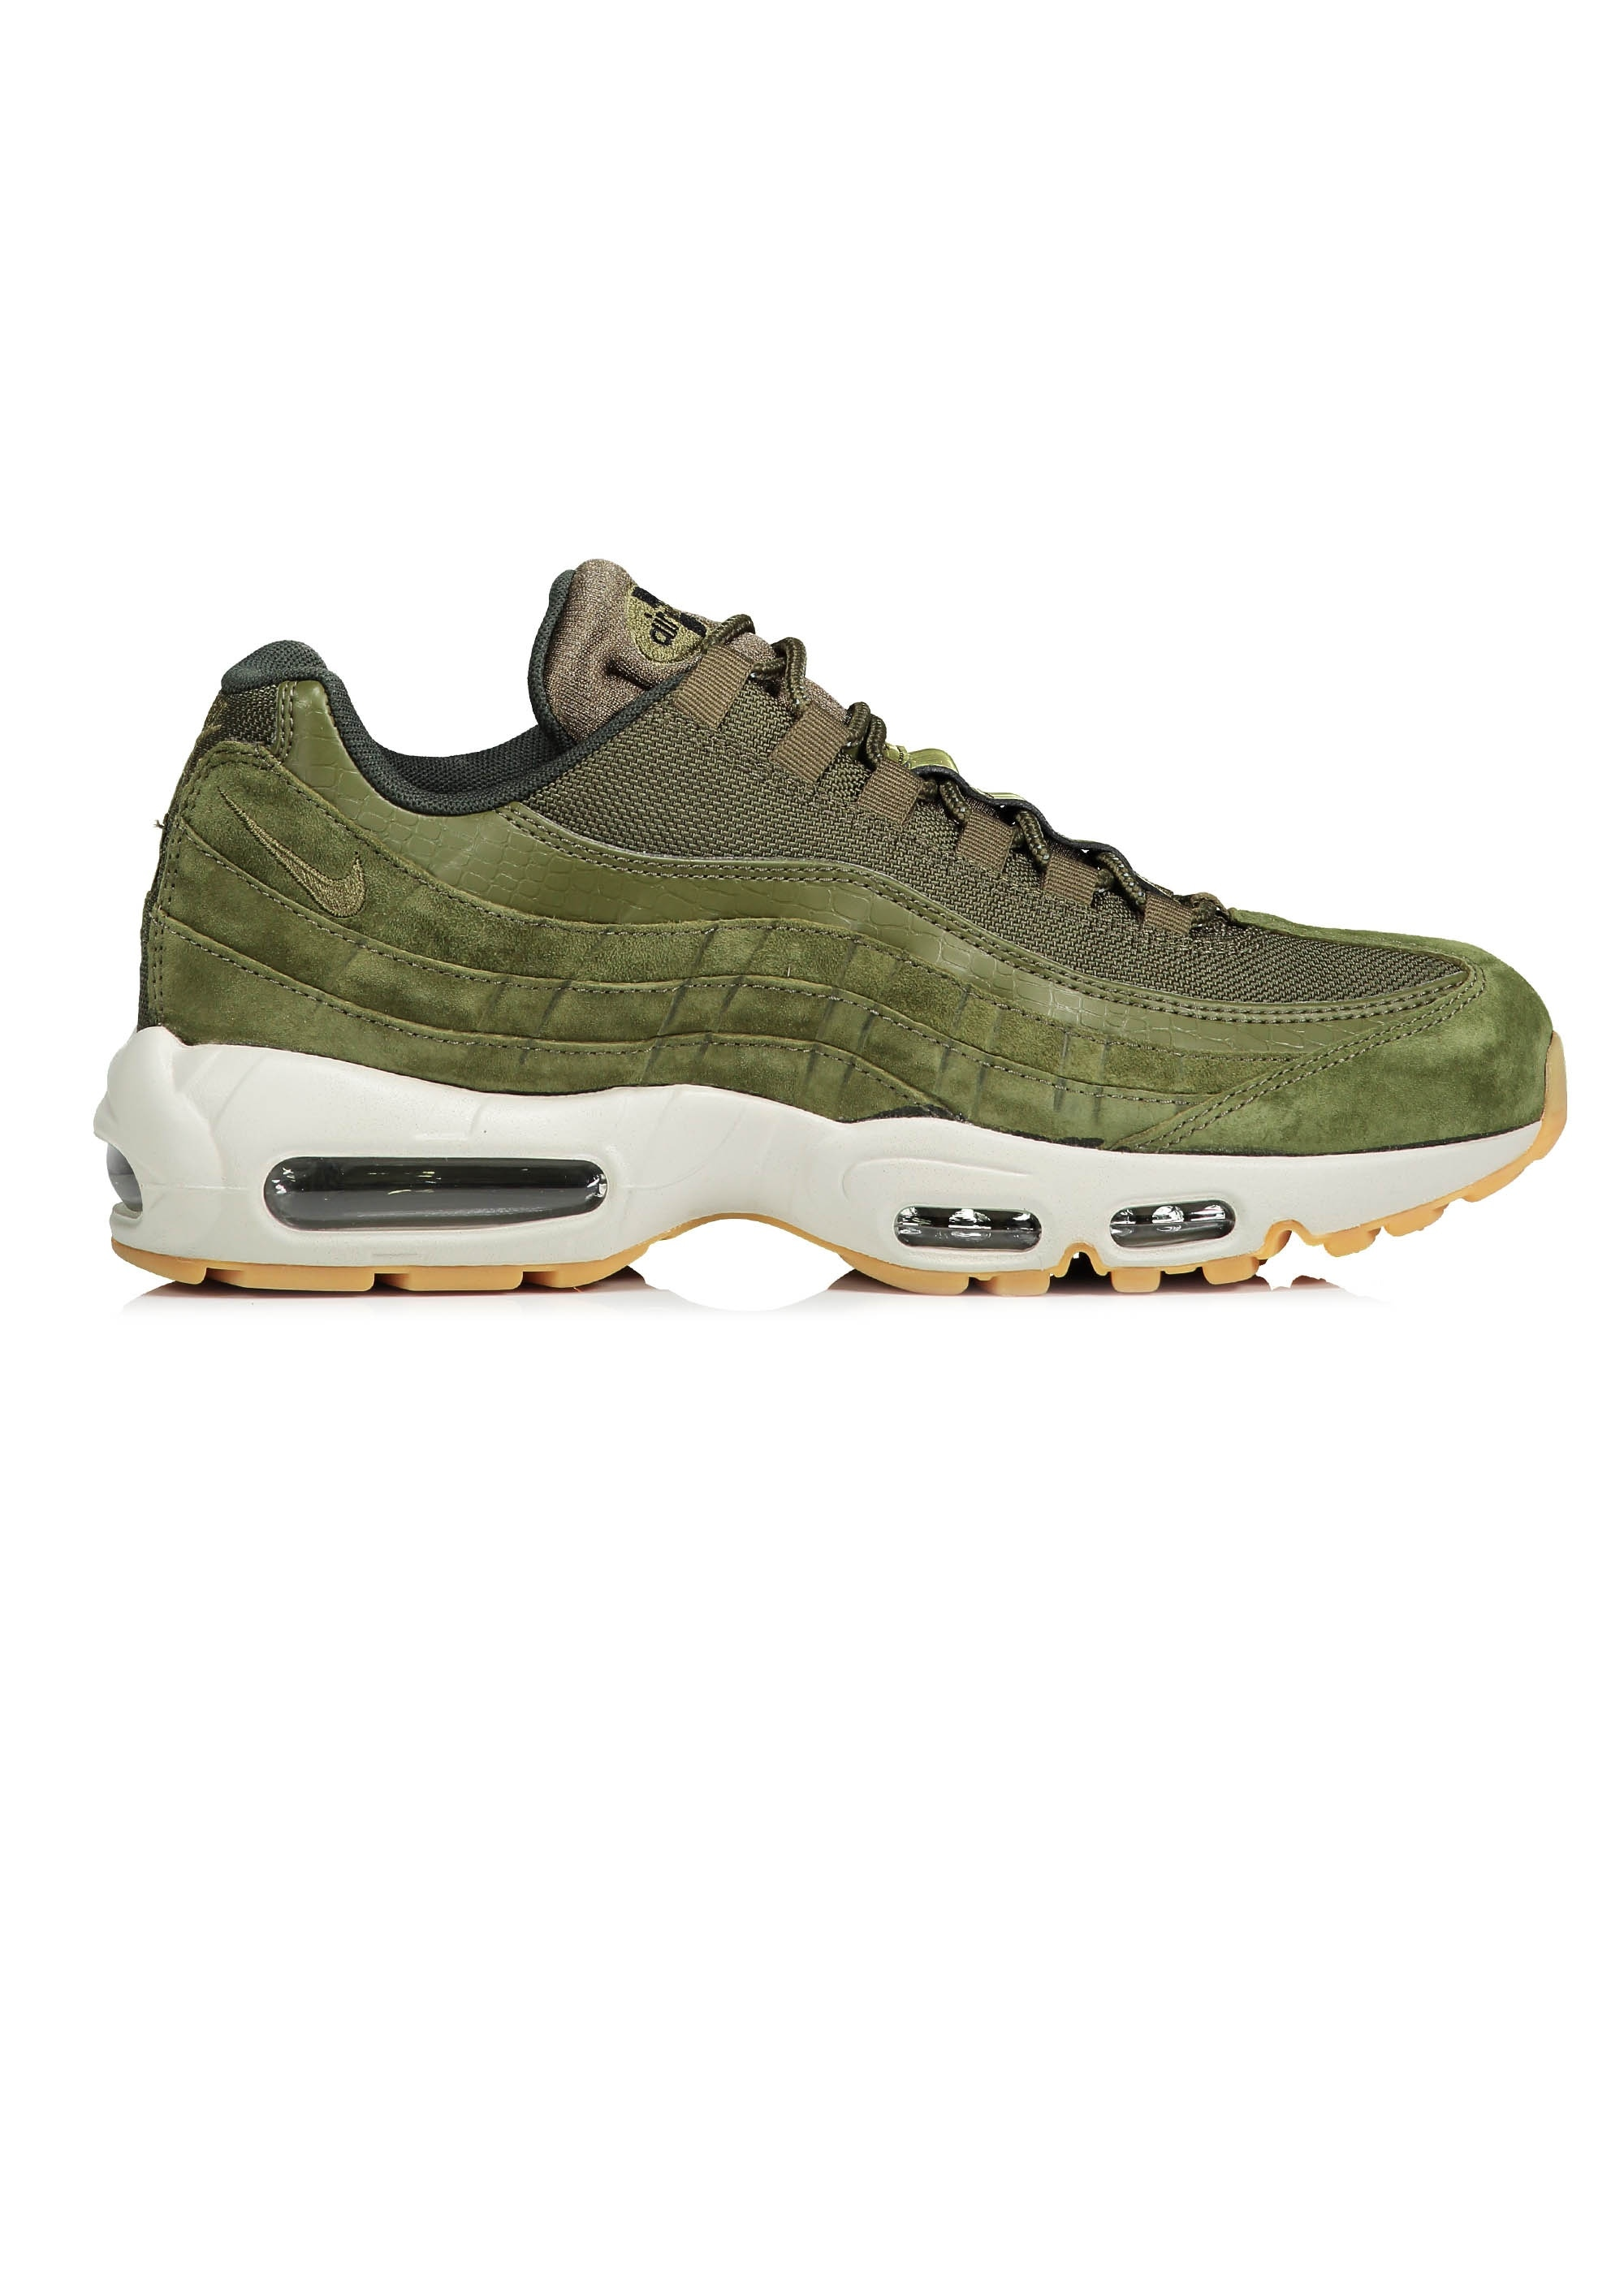 ffcee620f5 Nike Footwear Air Max 95 SE - Olive Canvas - Trainers from Triads UK